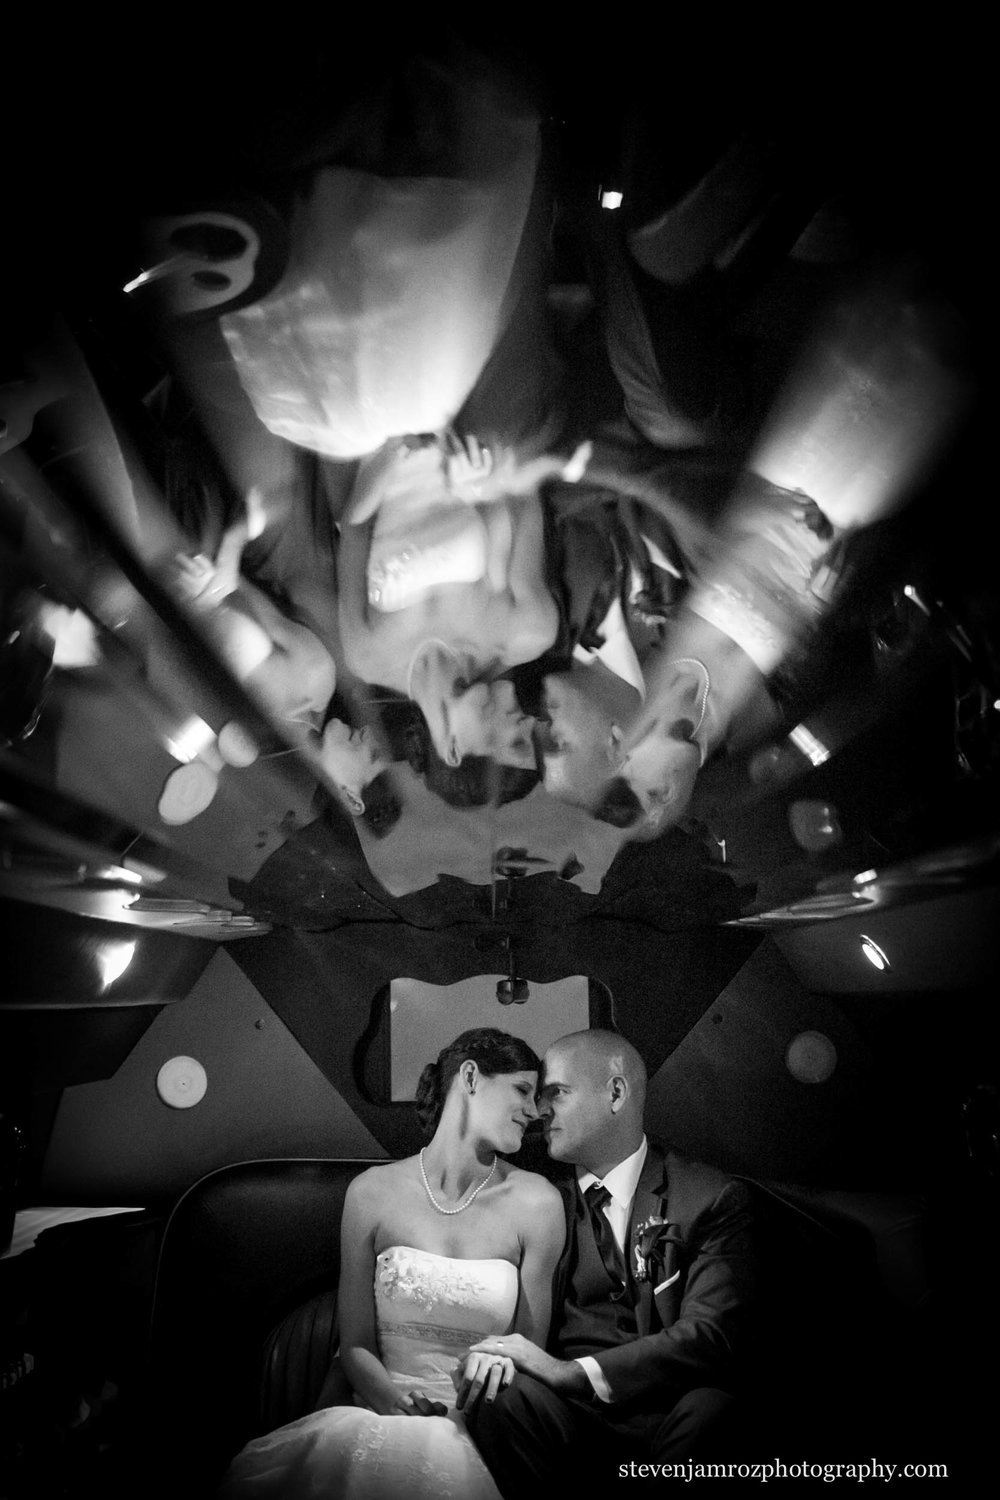 limo-ride-bride-groom-steven-jamroz-photography-0511.jpg